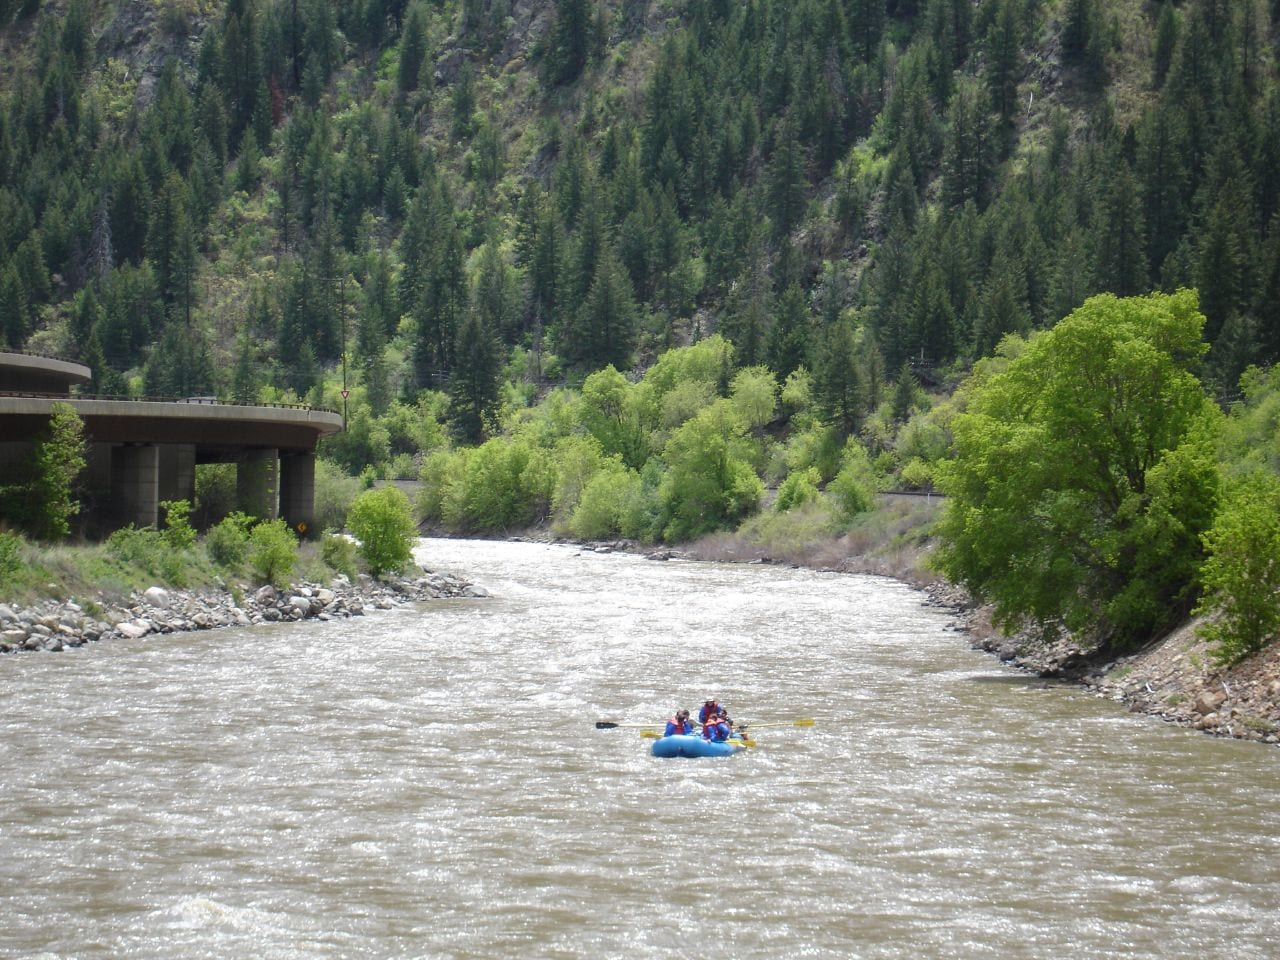 Rafting the Colorado River in Glenwood Canyon Colorado